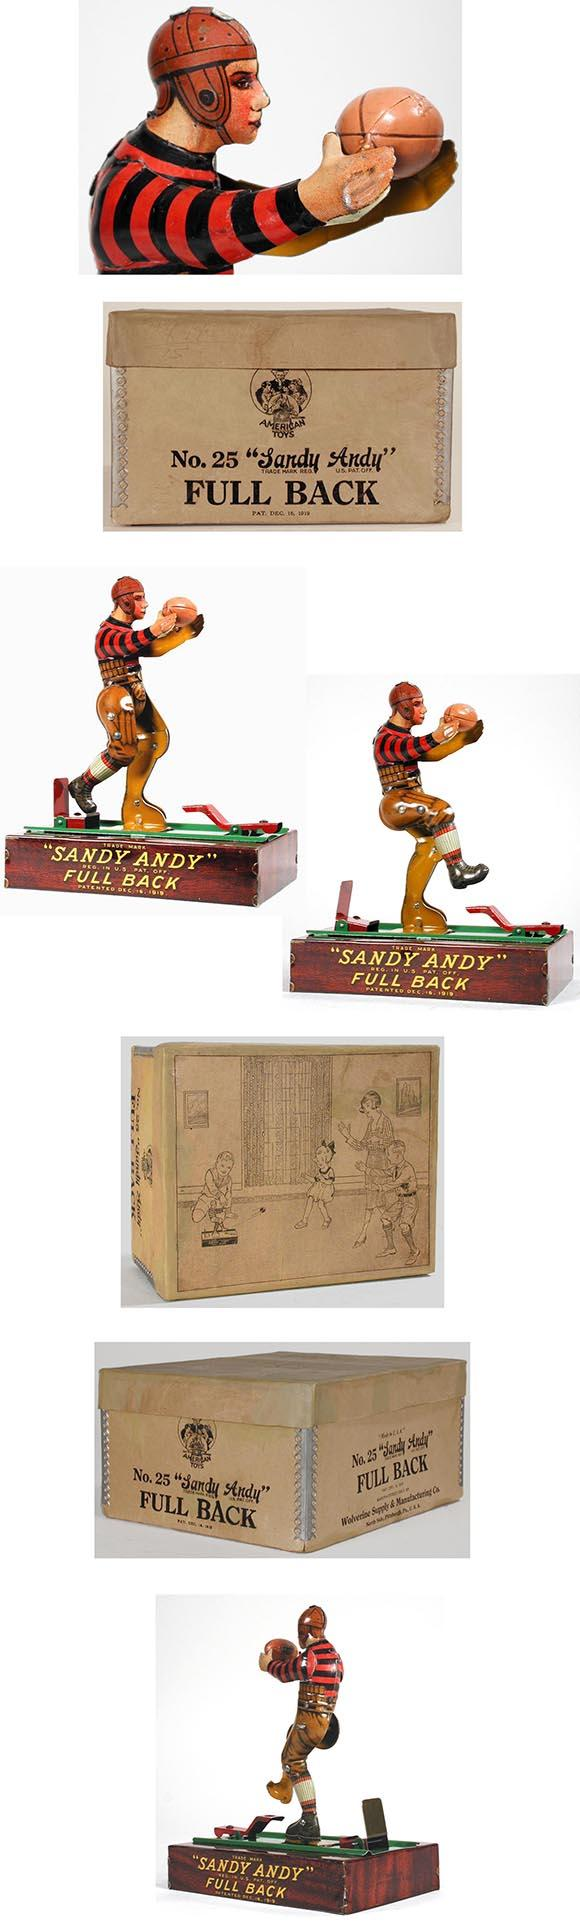 1919 Wolverine, Sandy Andy Full Back (Football Player) in Original Box